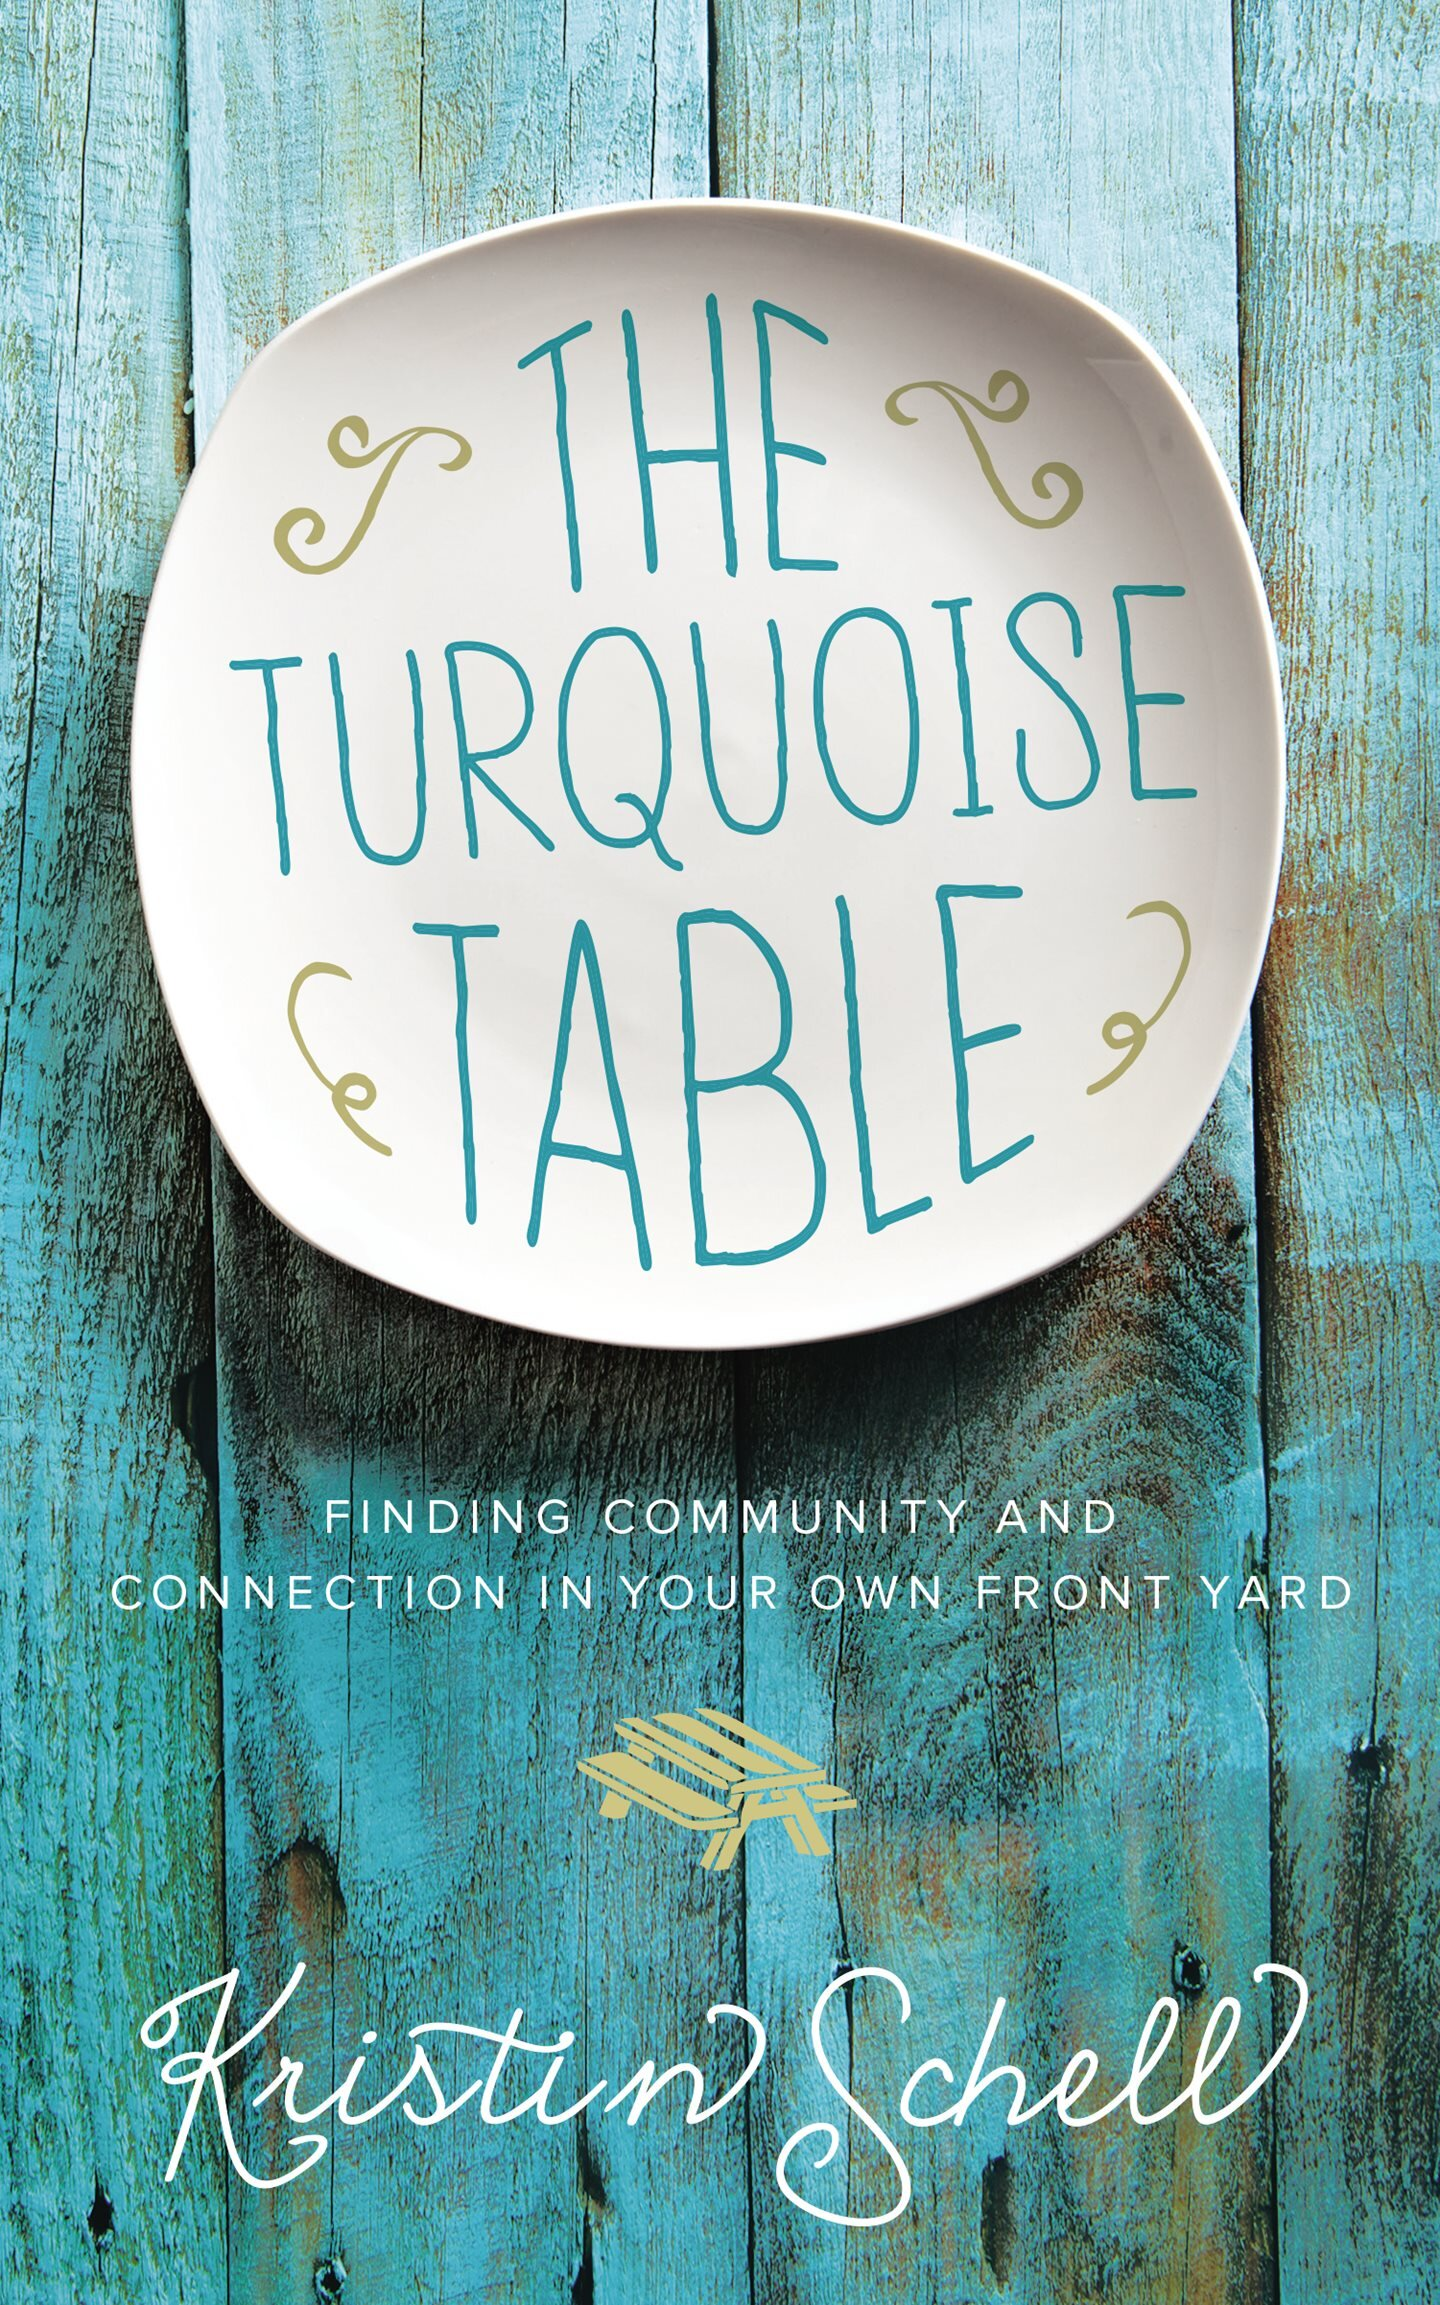 we support the turquoise table movement - A SIMPLE WAY TO CONNECT YOUR NEIHBORHOOD, YOUR COMMUNITY AND BUILD FRIENDSHIPSIn the Turquoise Table Community I feel connected to others in a way that's completely different than other social media sites. It's like sitting around a digital table sharing stories, ideas, and thoughts. It isn't a place of judgement or false impressions